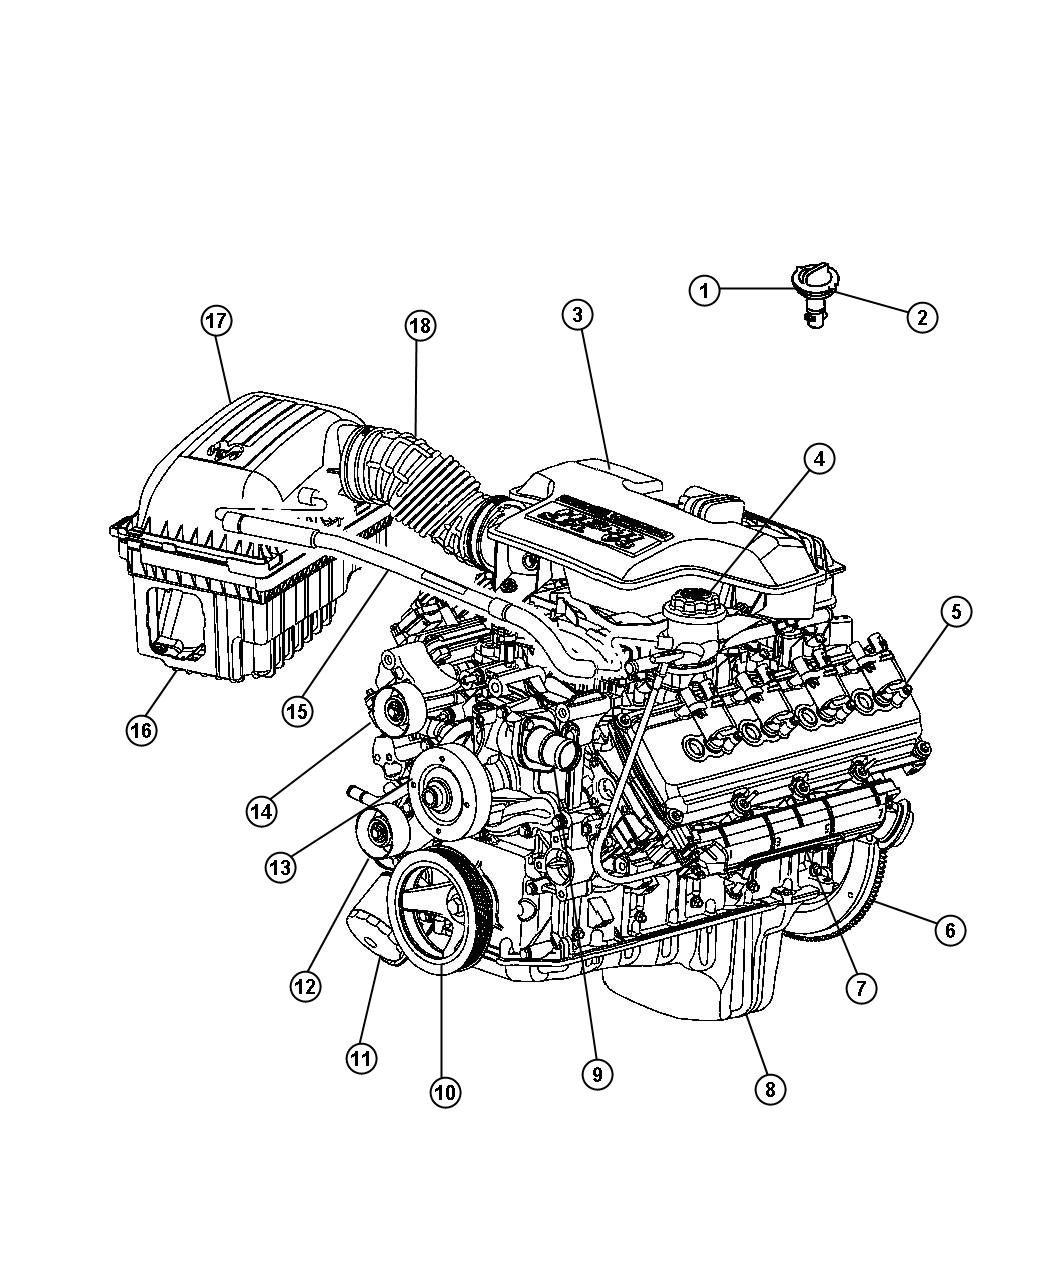 5 7 Hemi Engine Parts Diagram Guide And Troubleshooting Of Wiring Ram Block Third Level Rh 14 2 Jacobwinterstein